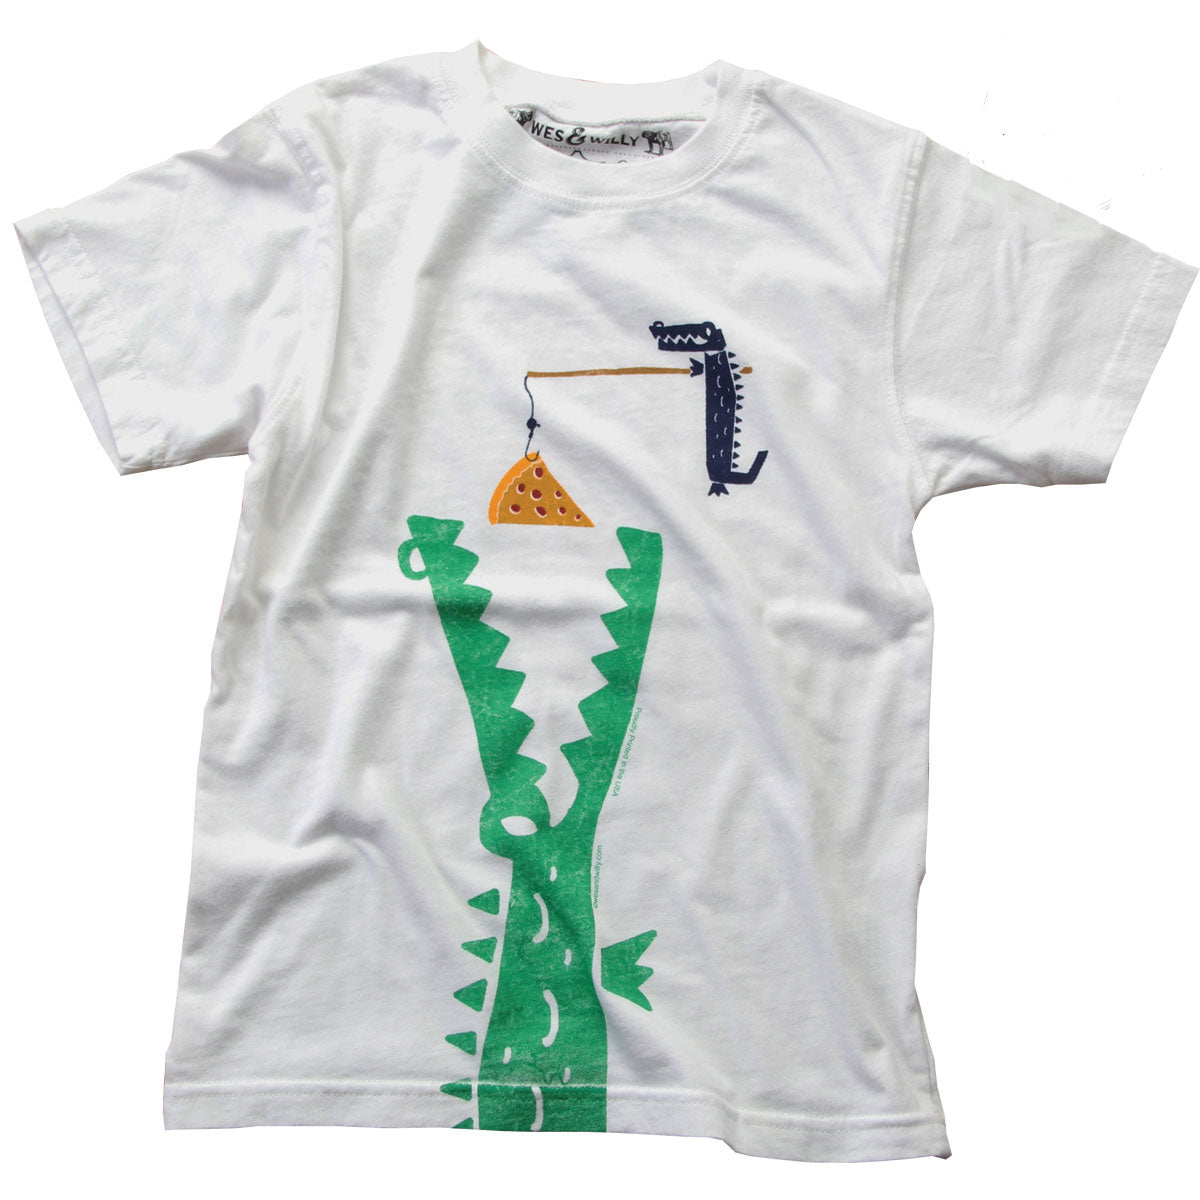 Boys' Hungry Gator Shirt by Wes and Willy